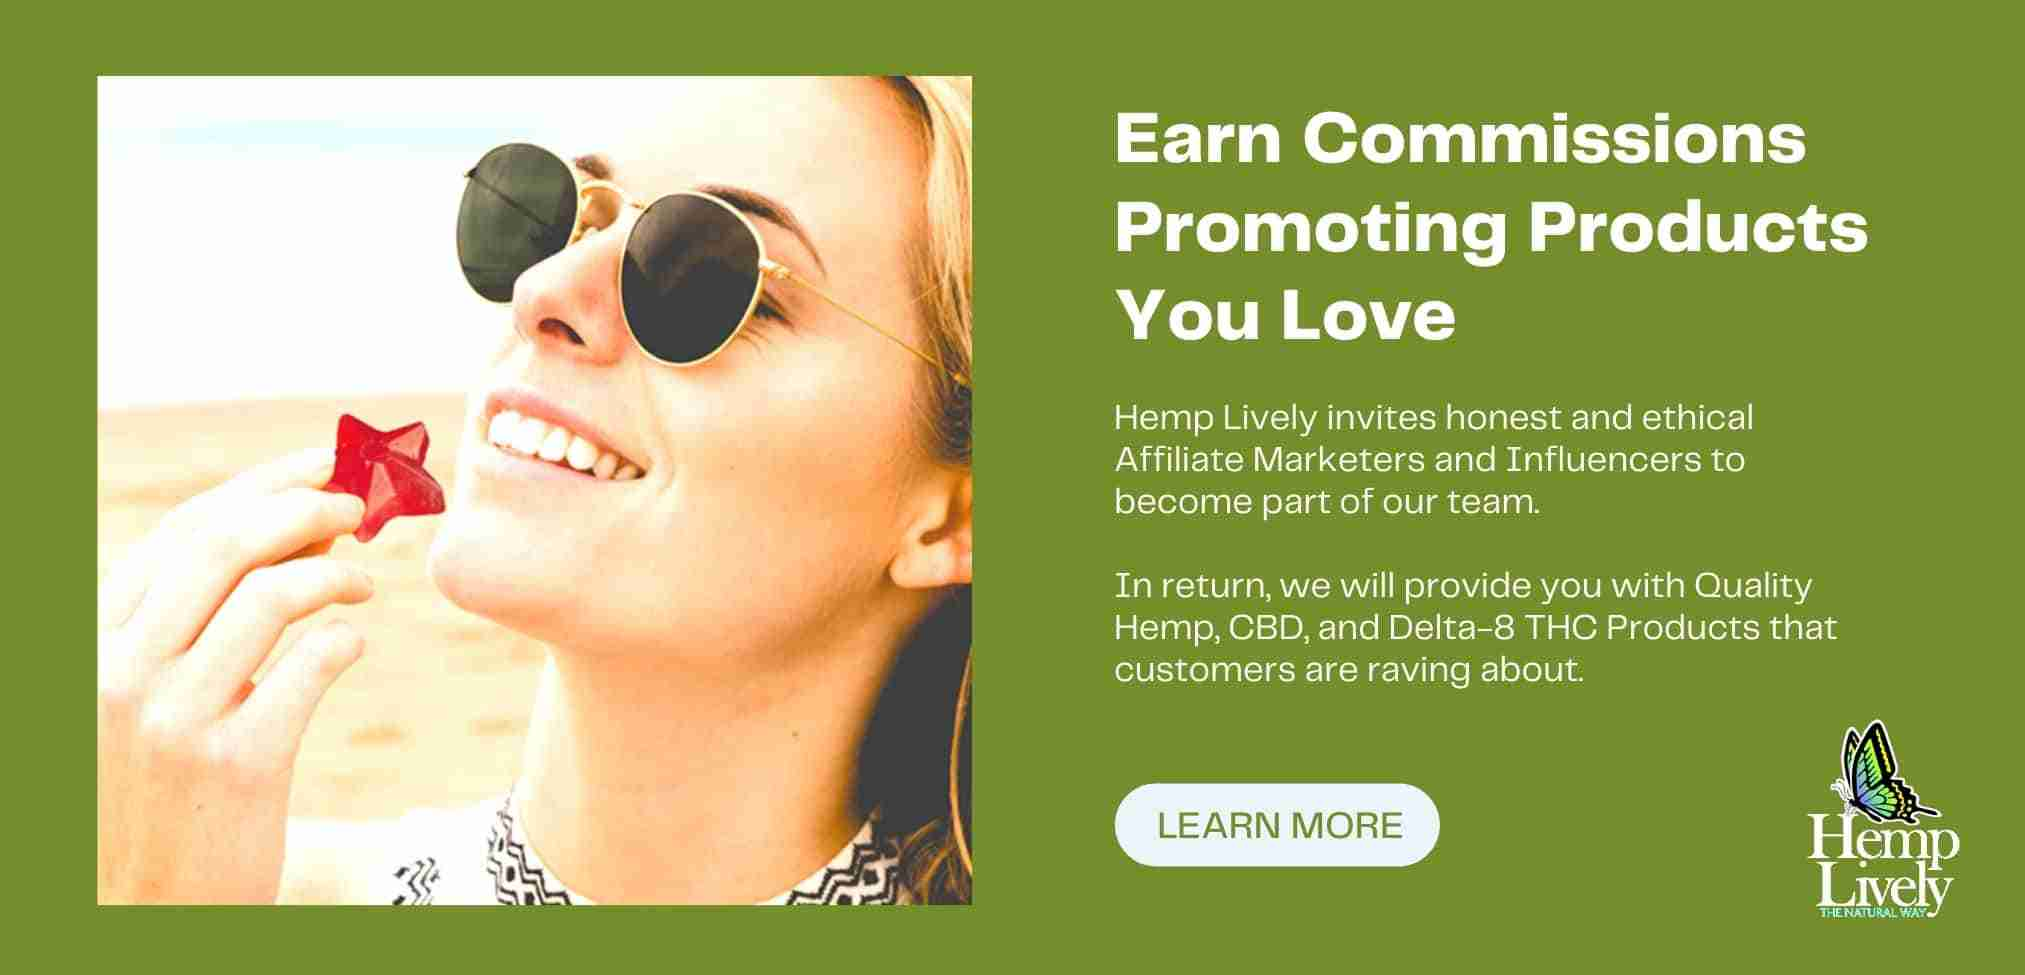 Earn Commissions Promoting Proucts You Love